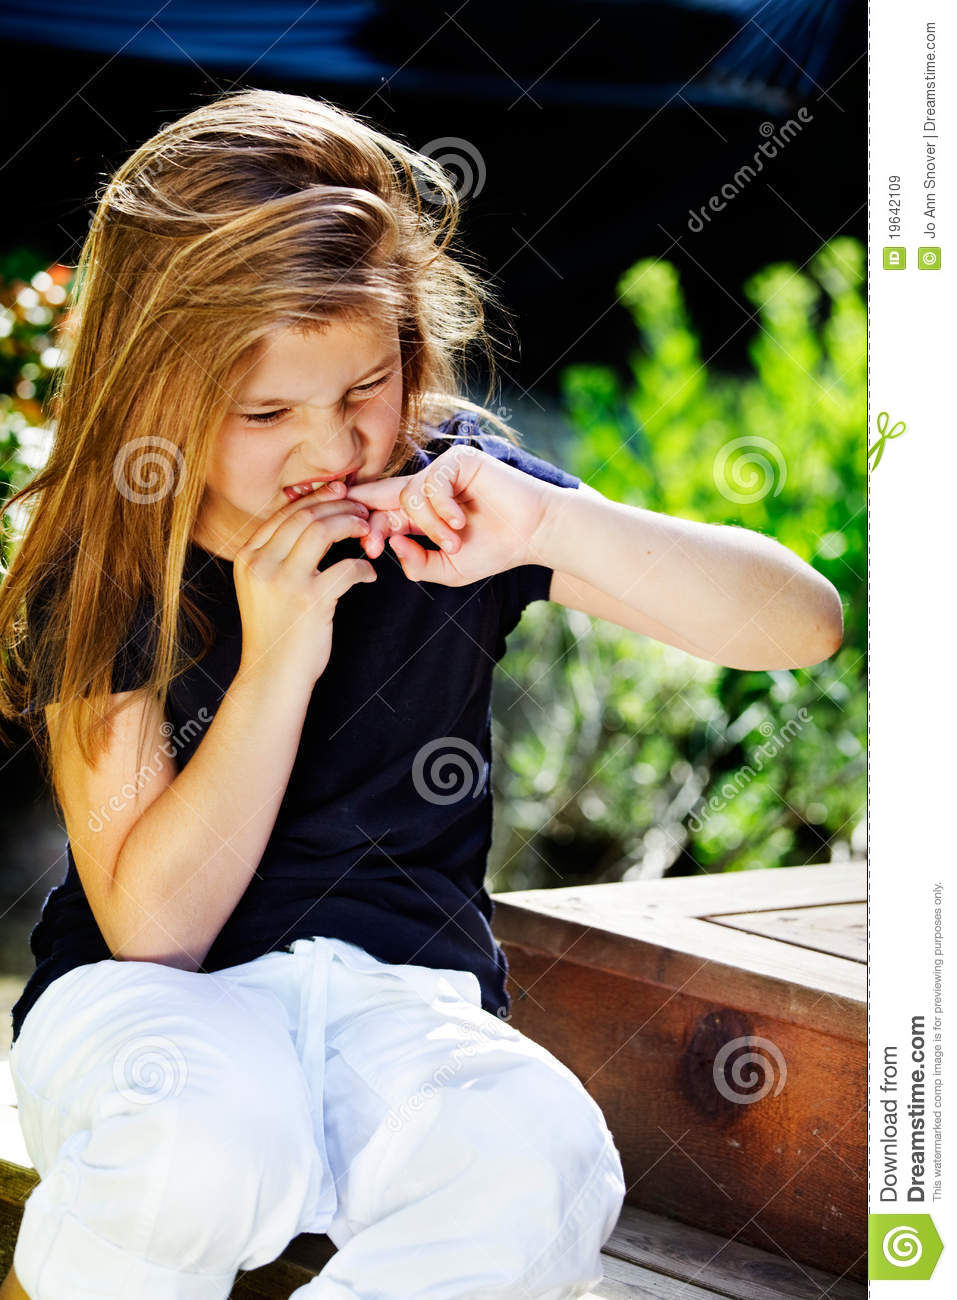 Girl Biting Nails Royalty Free Stock Images Image 19642109